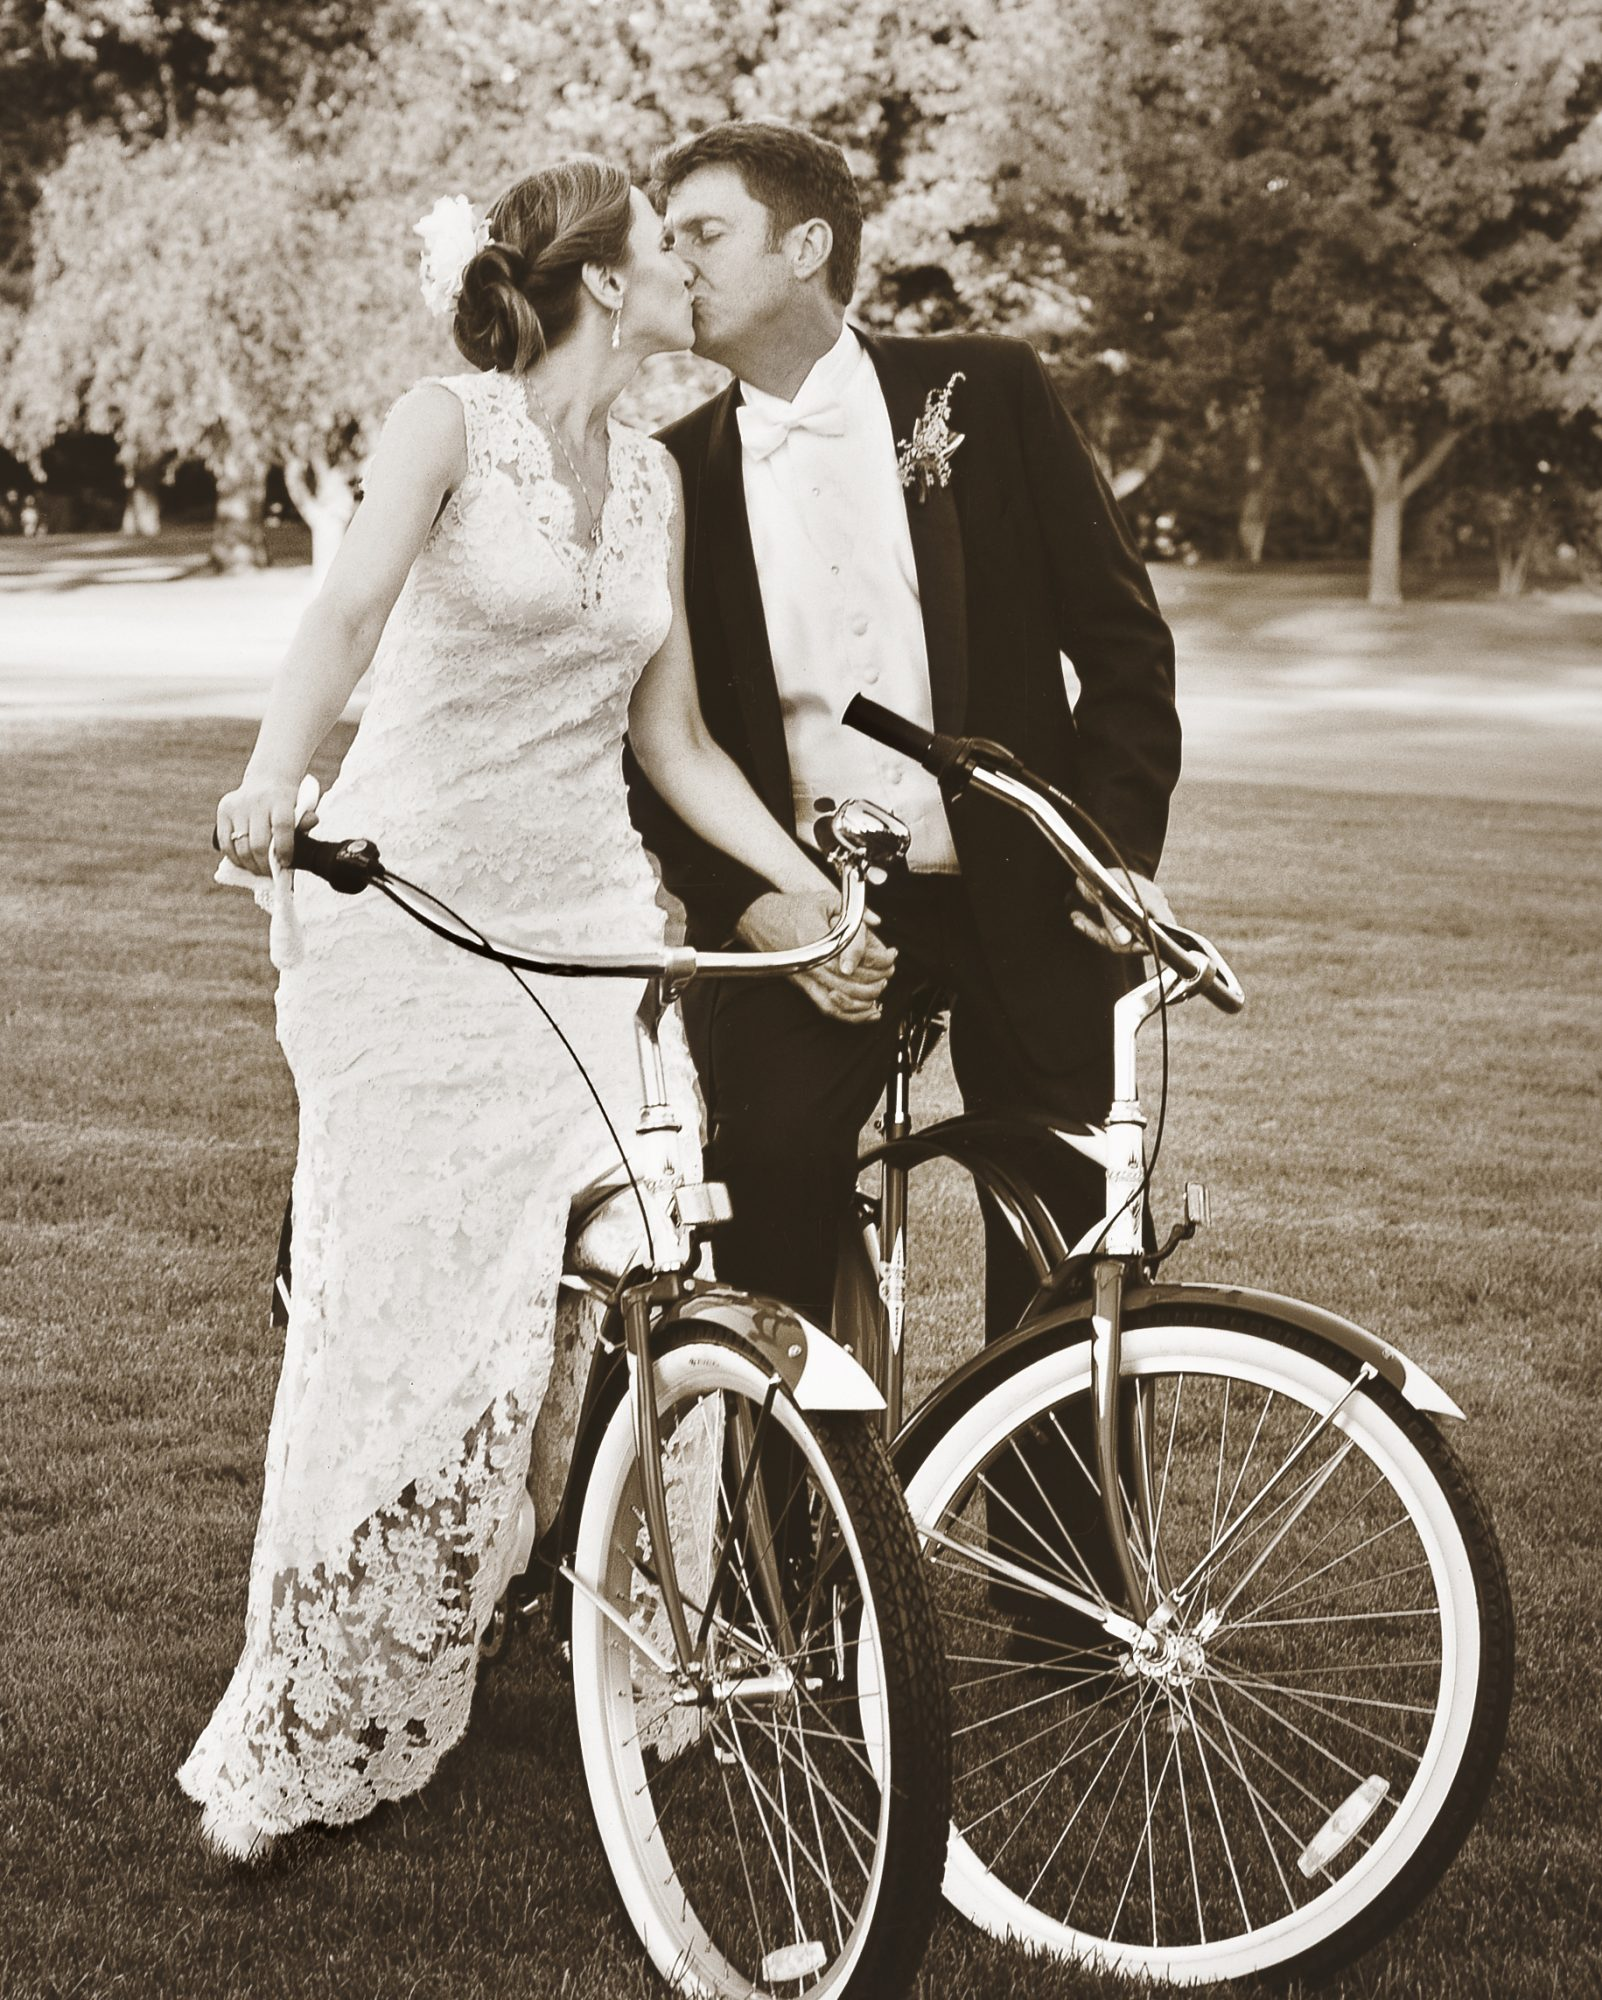 couple-kissing-bicycles-mw1204rwdb11-bw.jpg